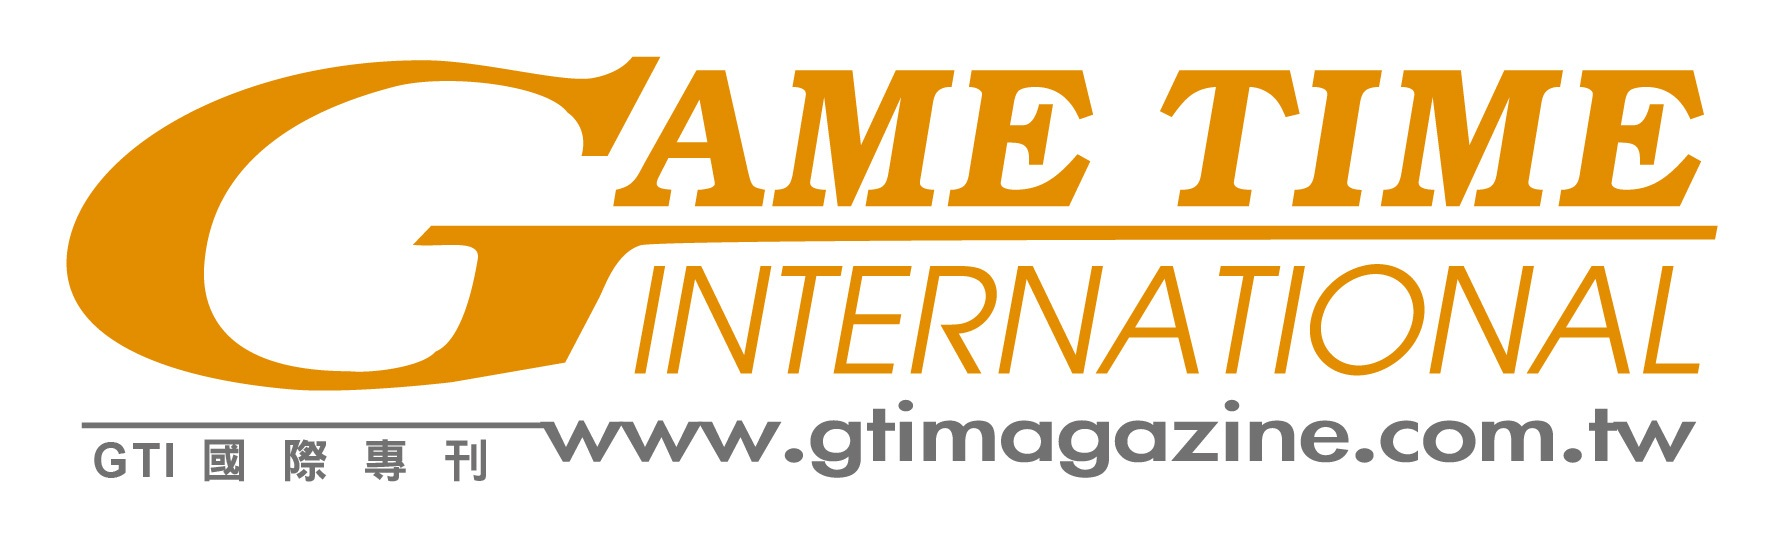 - Game Time International Magazine (GTI), initiated in 1995 in Taiwan, as the only English-speaking trade publication in Asia, publishes 11 issues annually and is circulated over 130 countries, which buyers and operators can contact GTI to find Asian (Taiwanese and Chinese) products. Moreover, in China, GTI has the most authoritative Chinese version magazine (China Game and China Amuse). Every year, GTI will select elaborately and attend several key international exhibitions to do promotion. It is noteworthy that GTI is also the organizer of the GTI Asia Taipei Expo and GTI Asia China Expo.